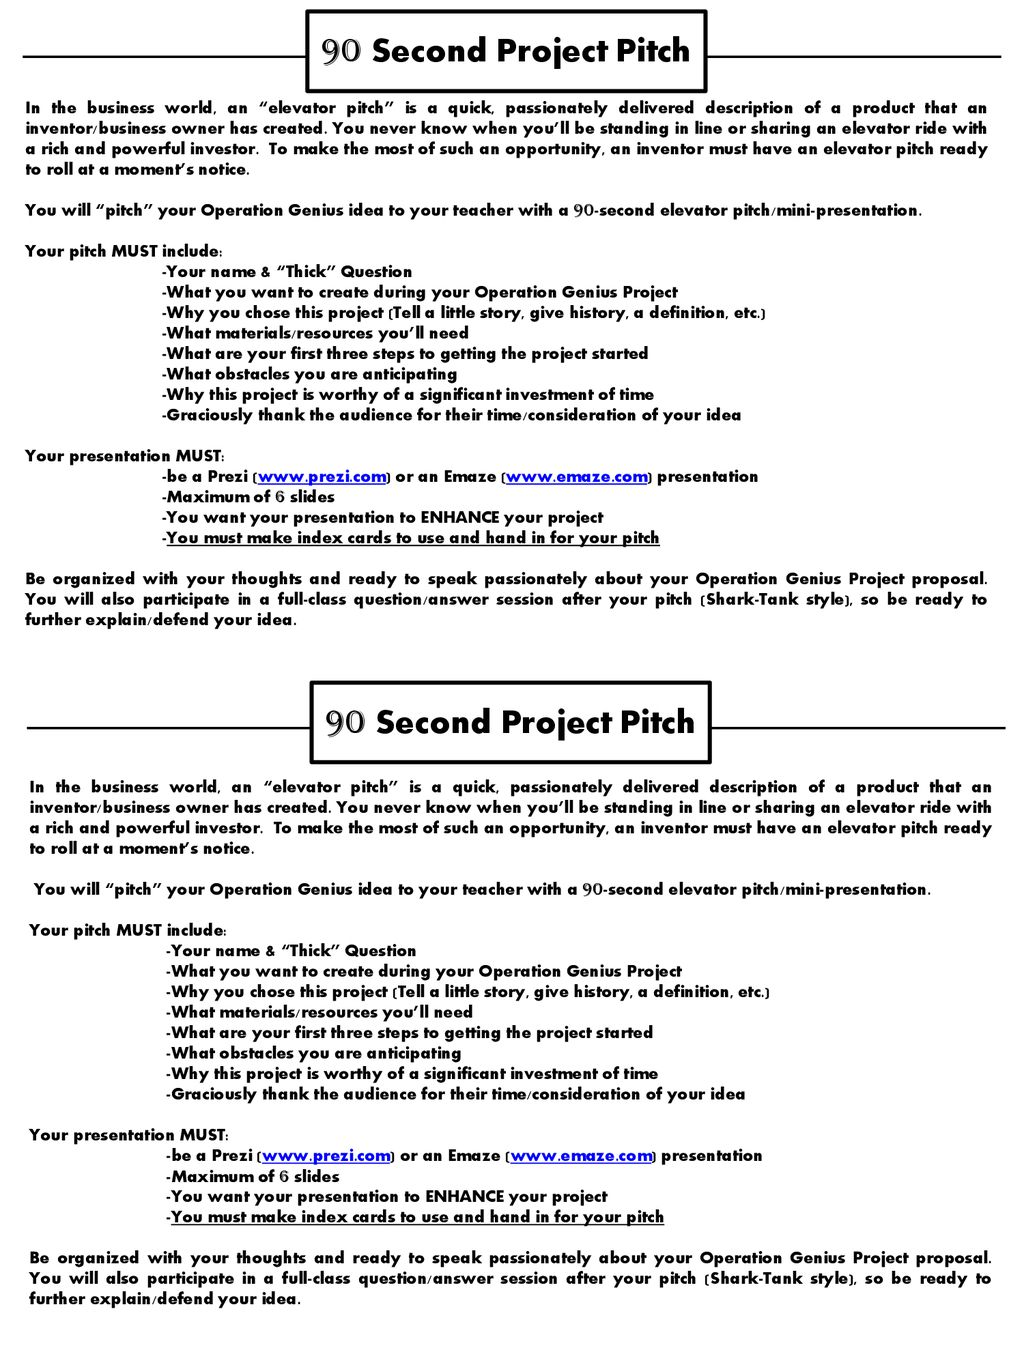 90 Second Project Pitch 90 Second Project Pitch - ppt download